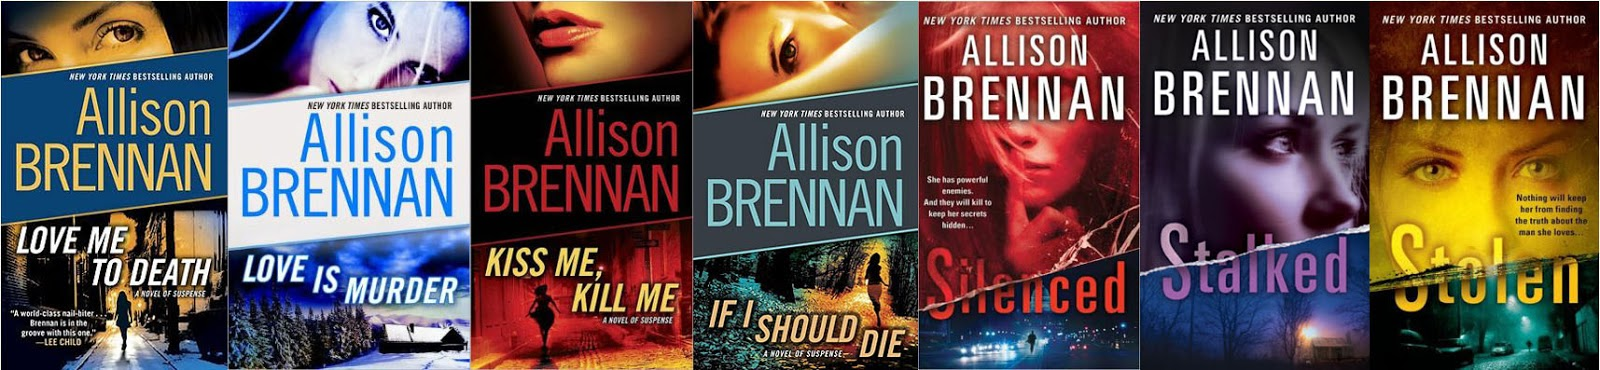 Lucy Kincaid Series Books 1 - 8 - RE-UPLOADED - Allison Brennan